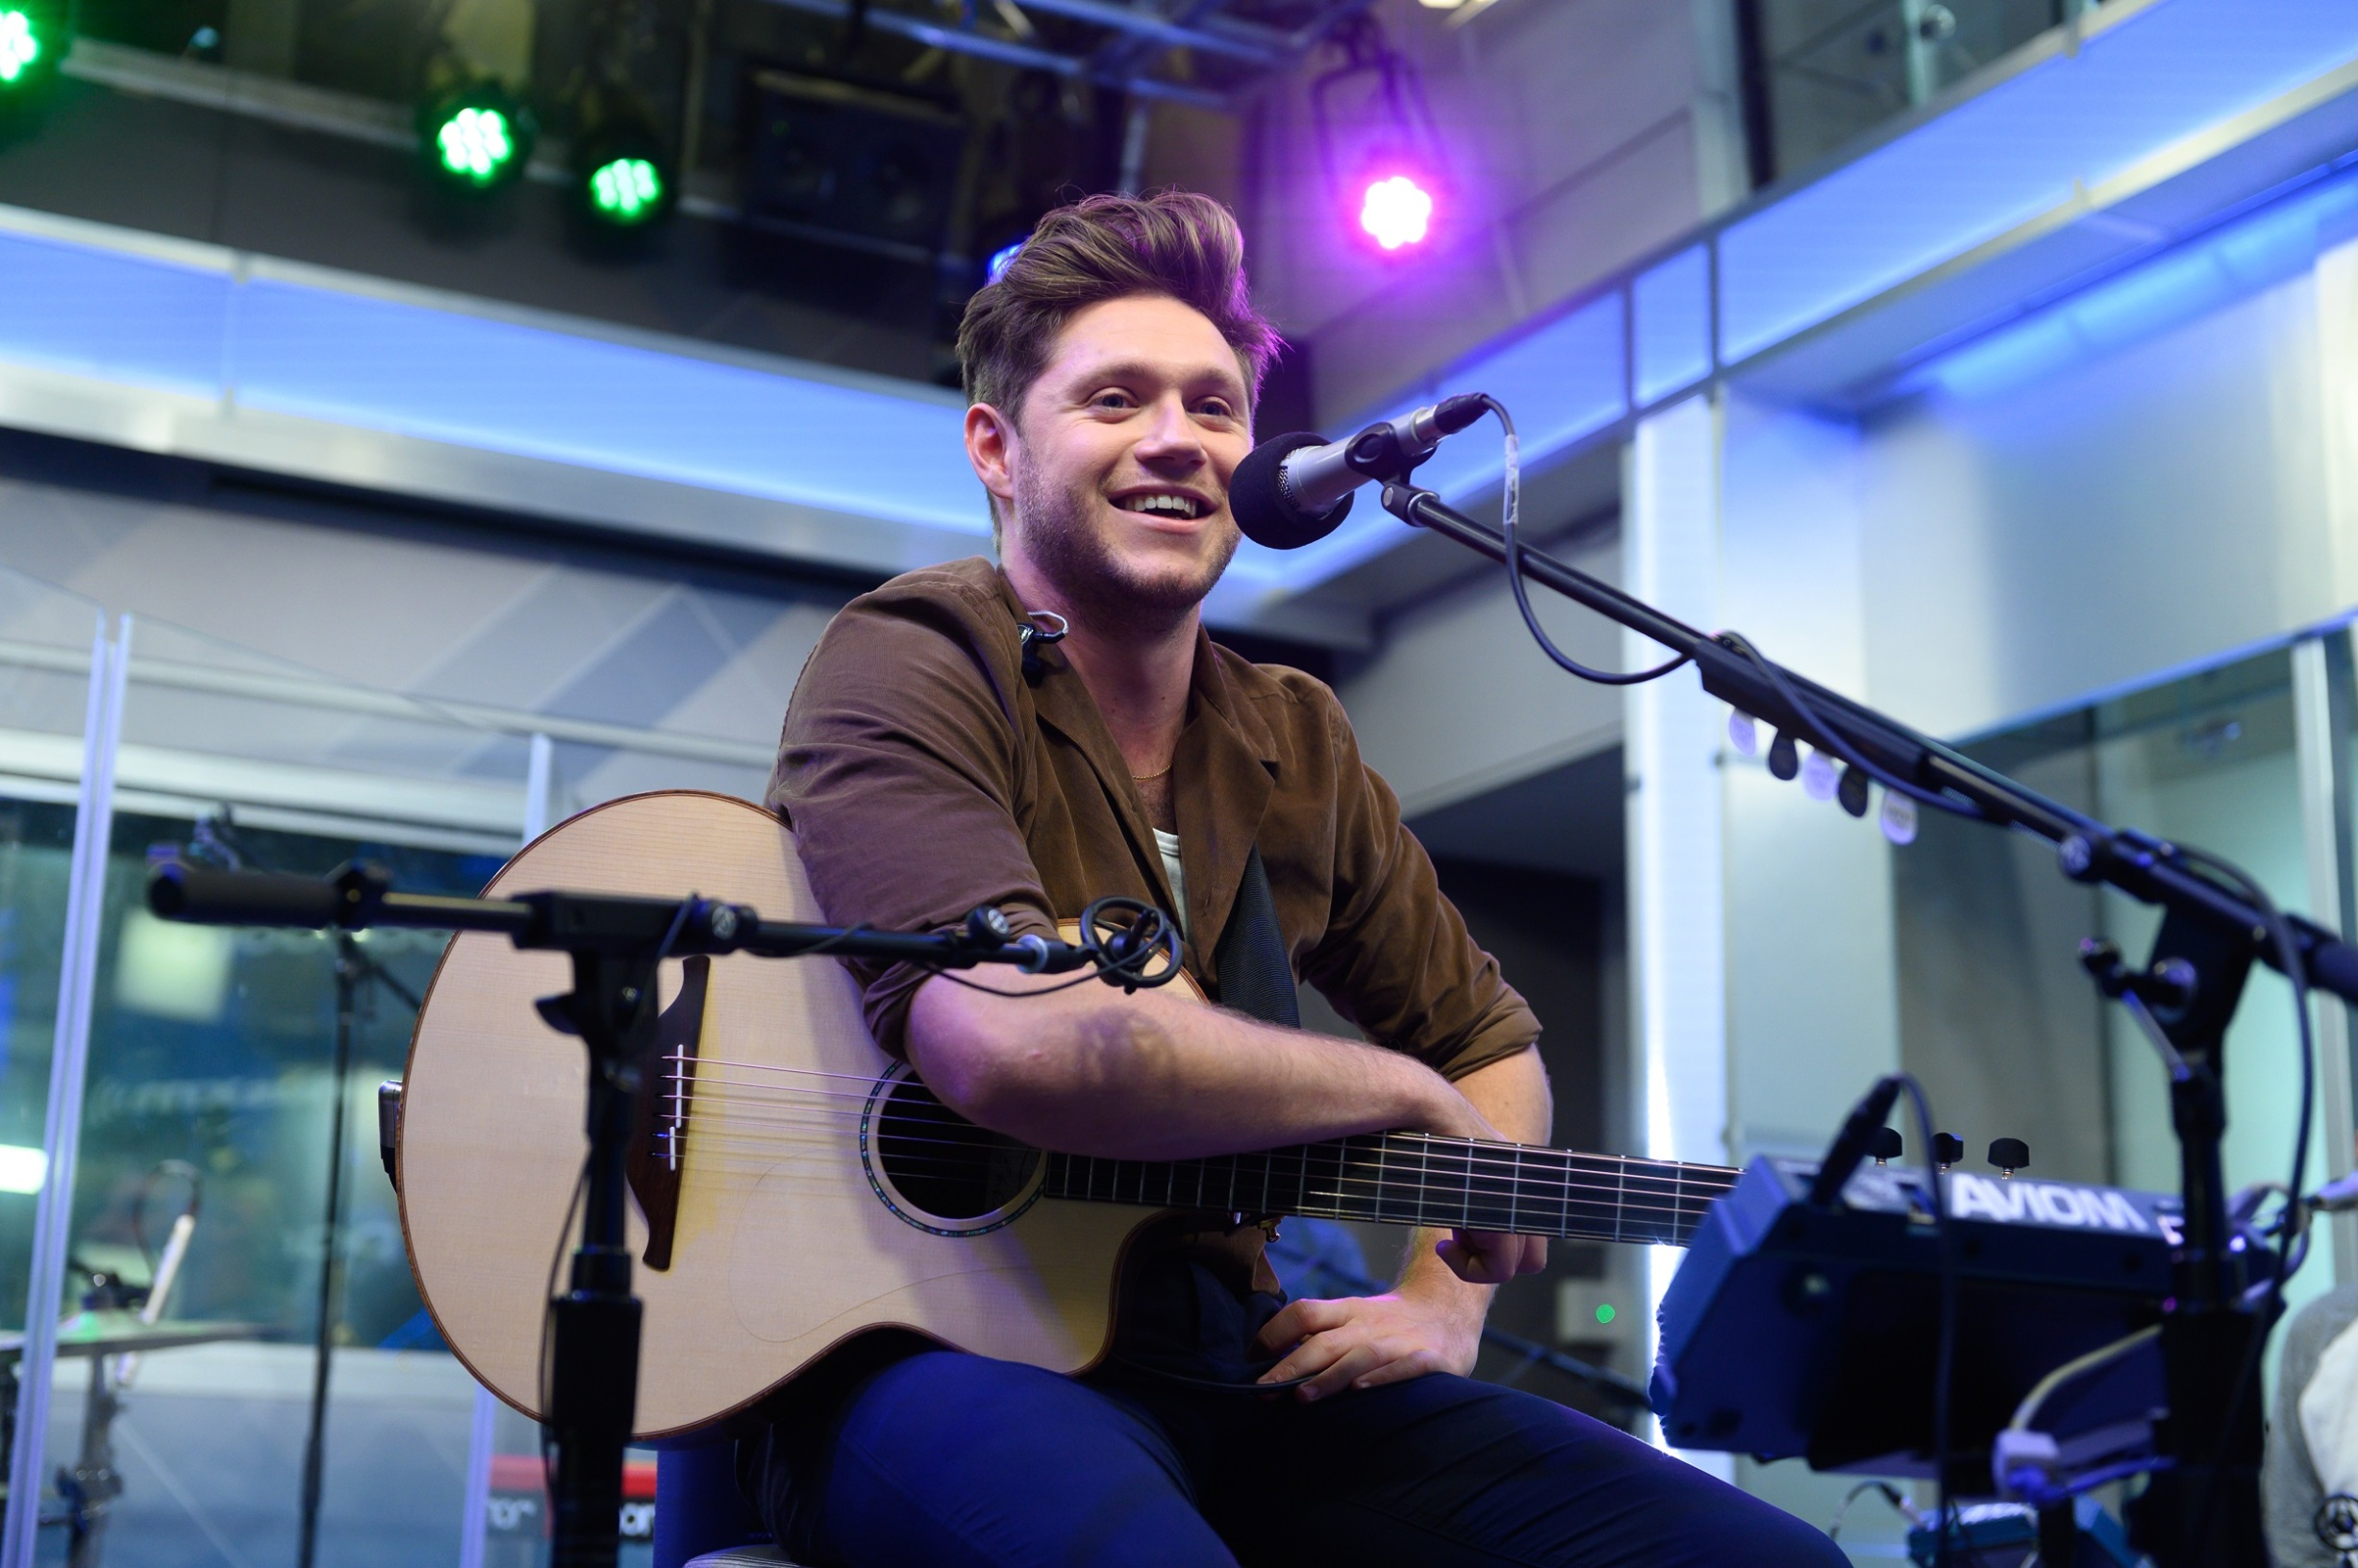 NEW YORK, NEW YORK - OCTOBER 08: Niall Horan performs on SiriusXM Hits 1 at the SiriusXM Studios in New York City on October 08, 2019 in New York City. (Photo by Noam Galai/Getty Images for SiriusXM)